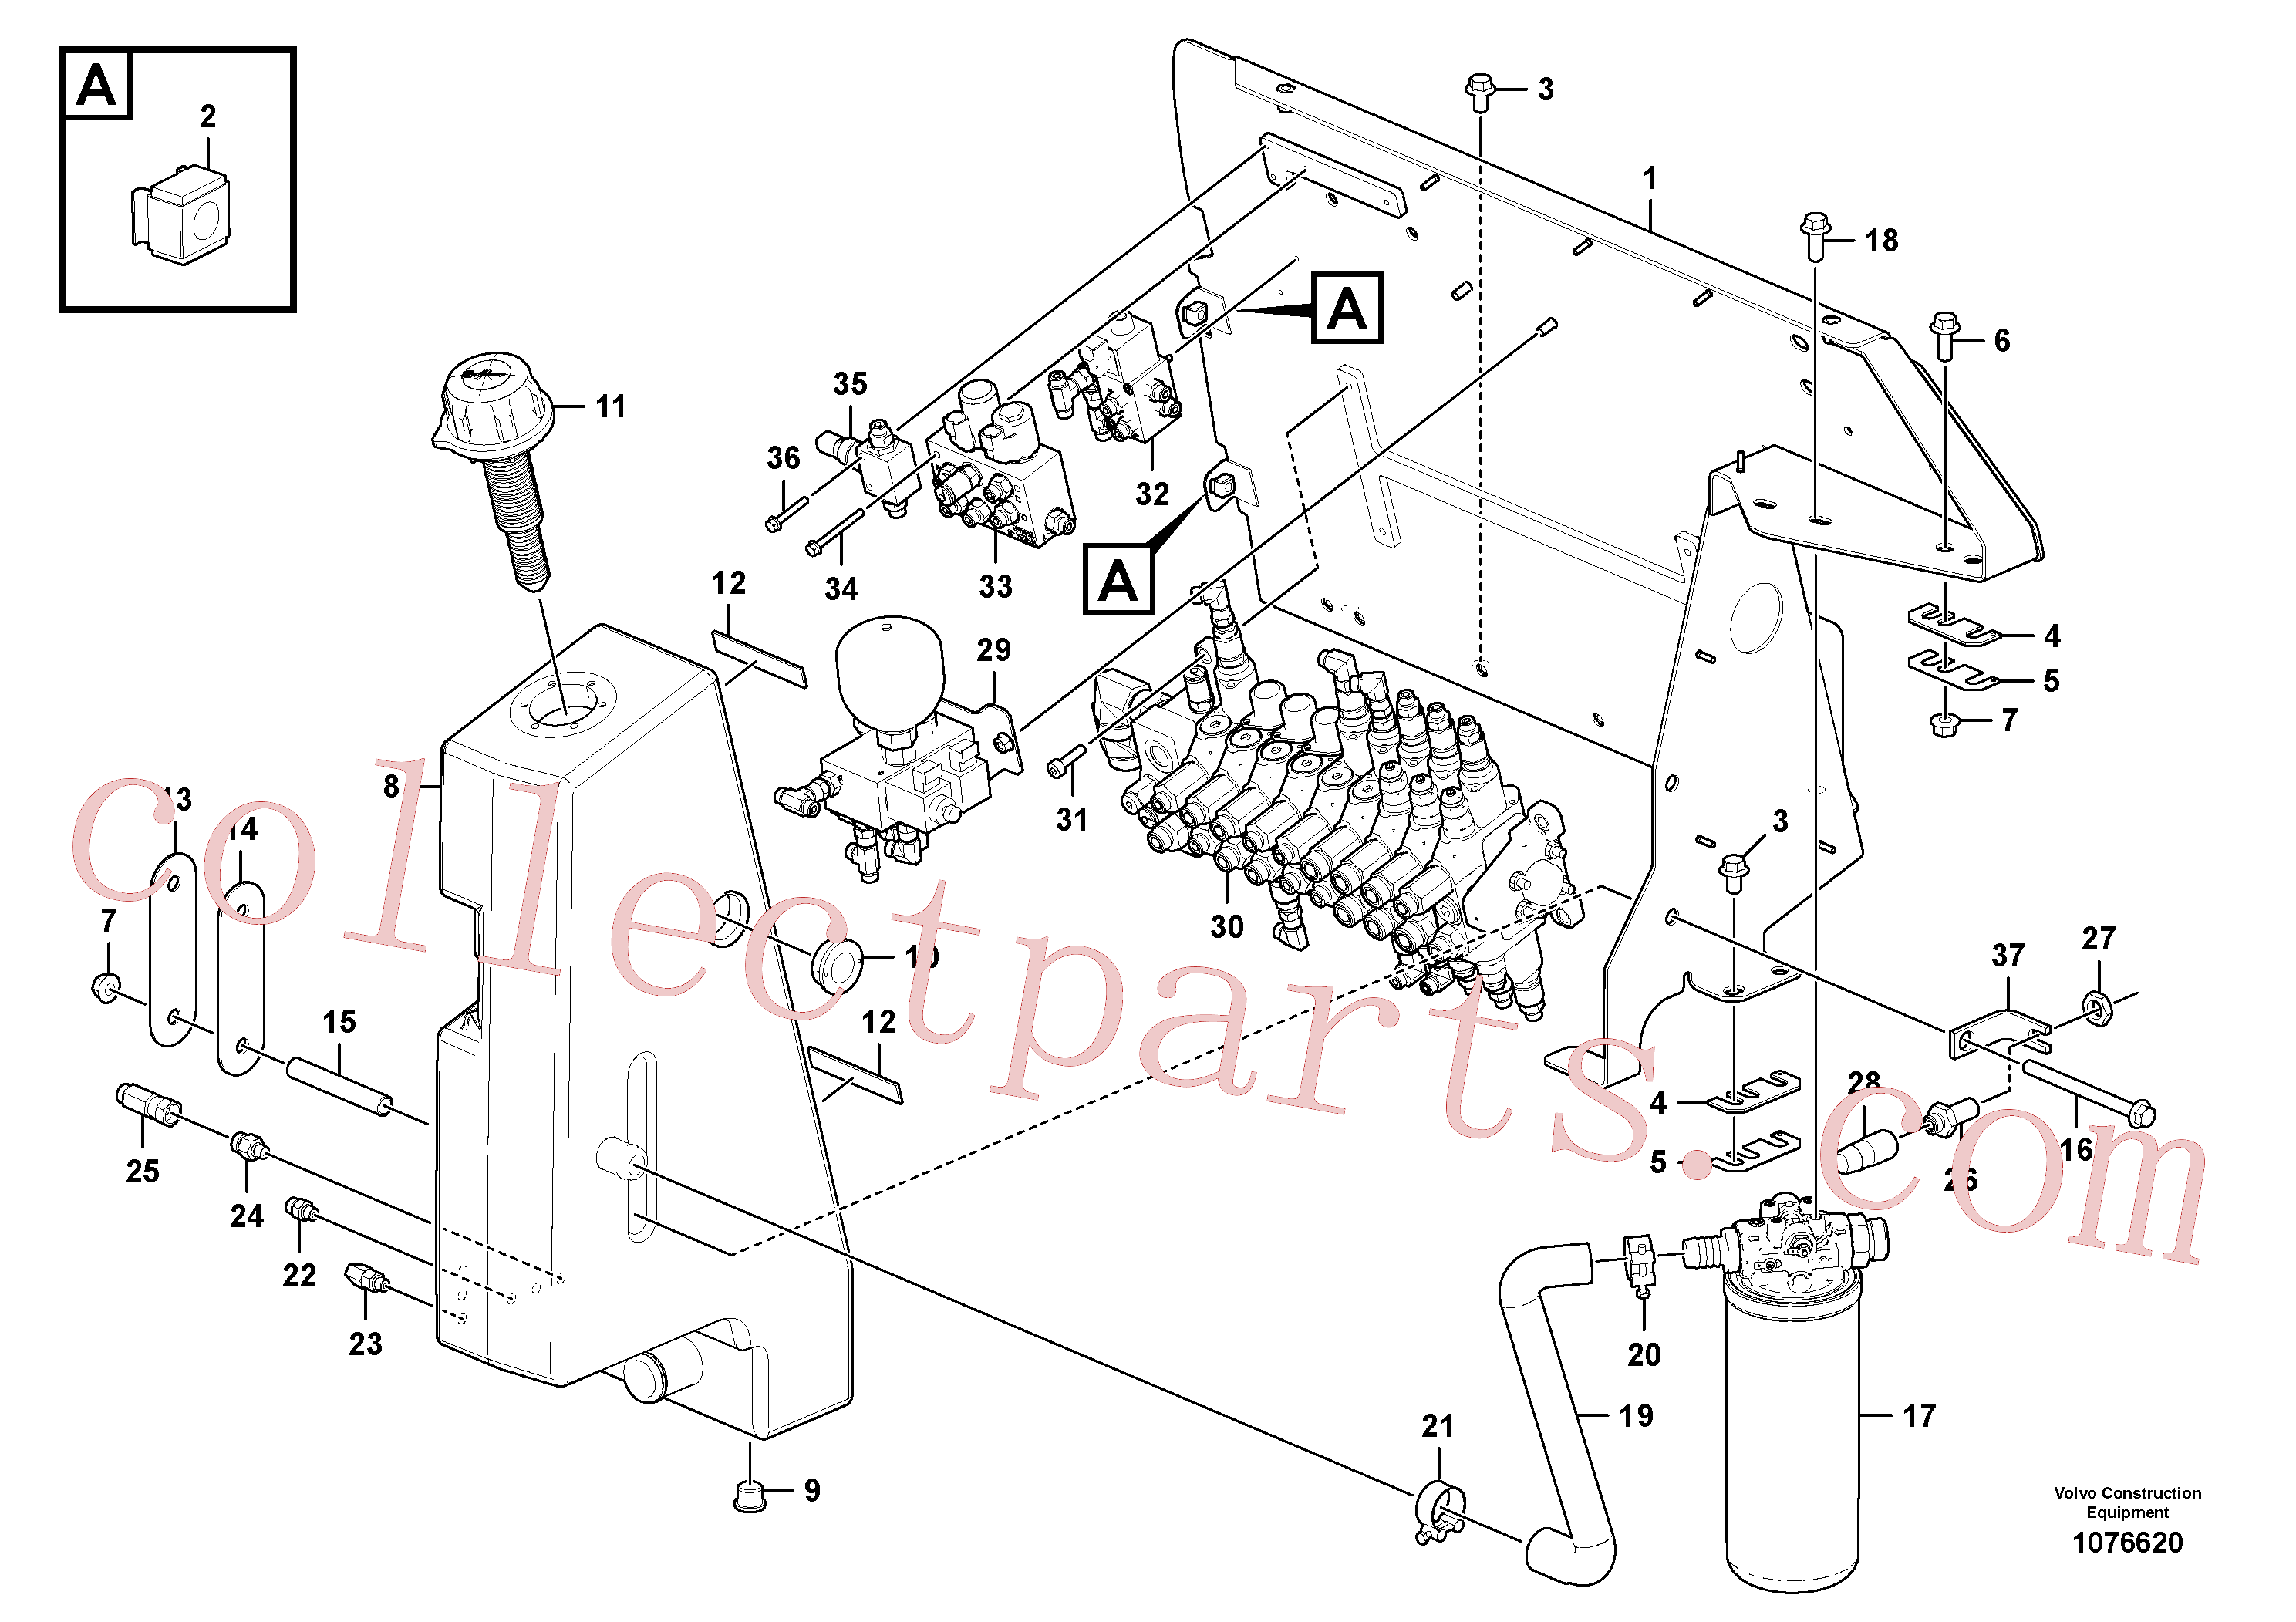 VOE11802432 for Volvo Hydraulic tank(1076620 assembly)